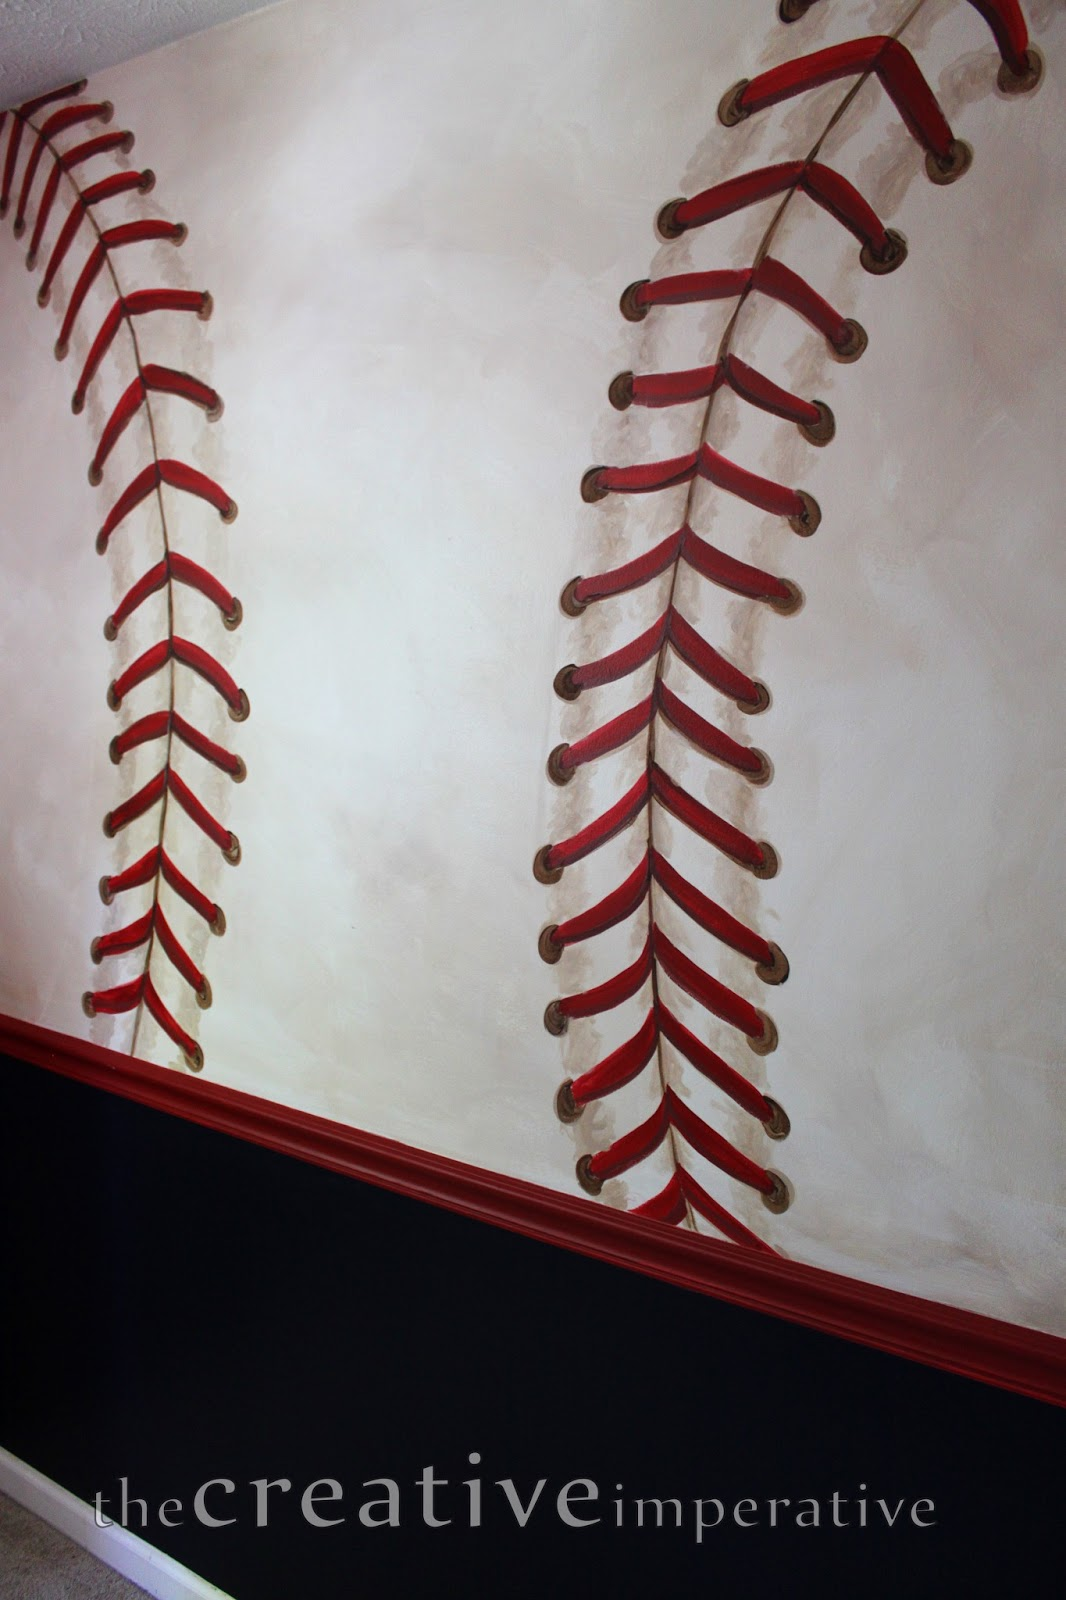 The Creative Imperative: Some Yankees and Nationals ...